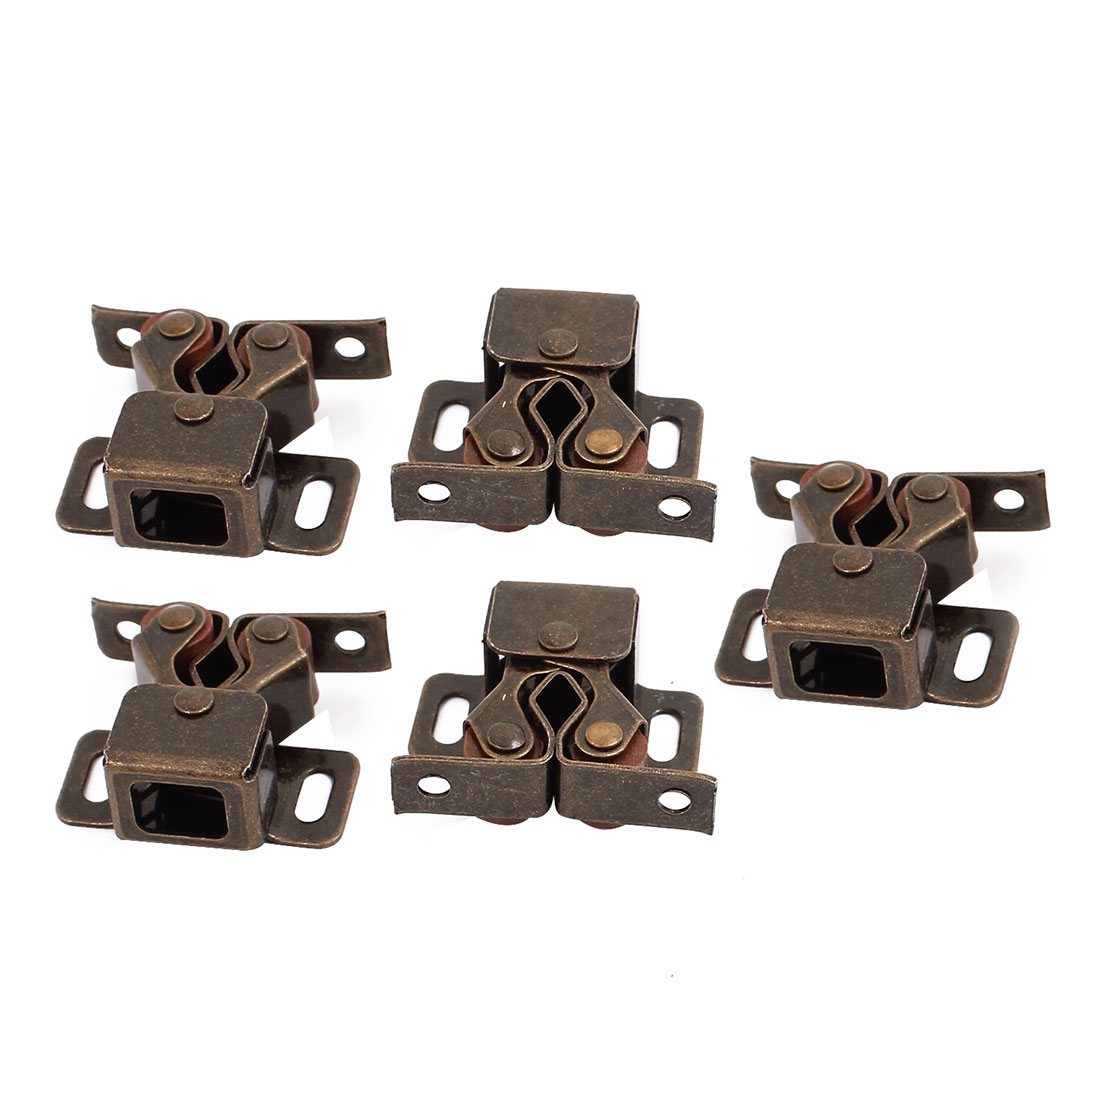 Cupboard Closet Cabinet Door Double Ball Roller Catch Latch 32 x 30 x 15mm Bronze Tone 5pcs